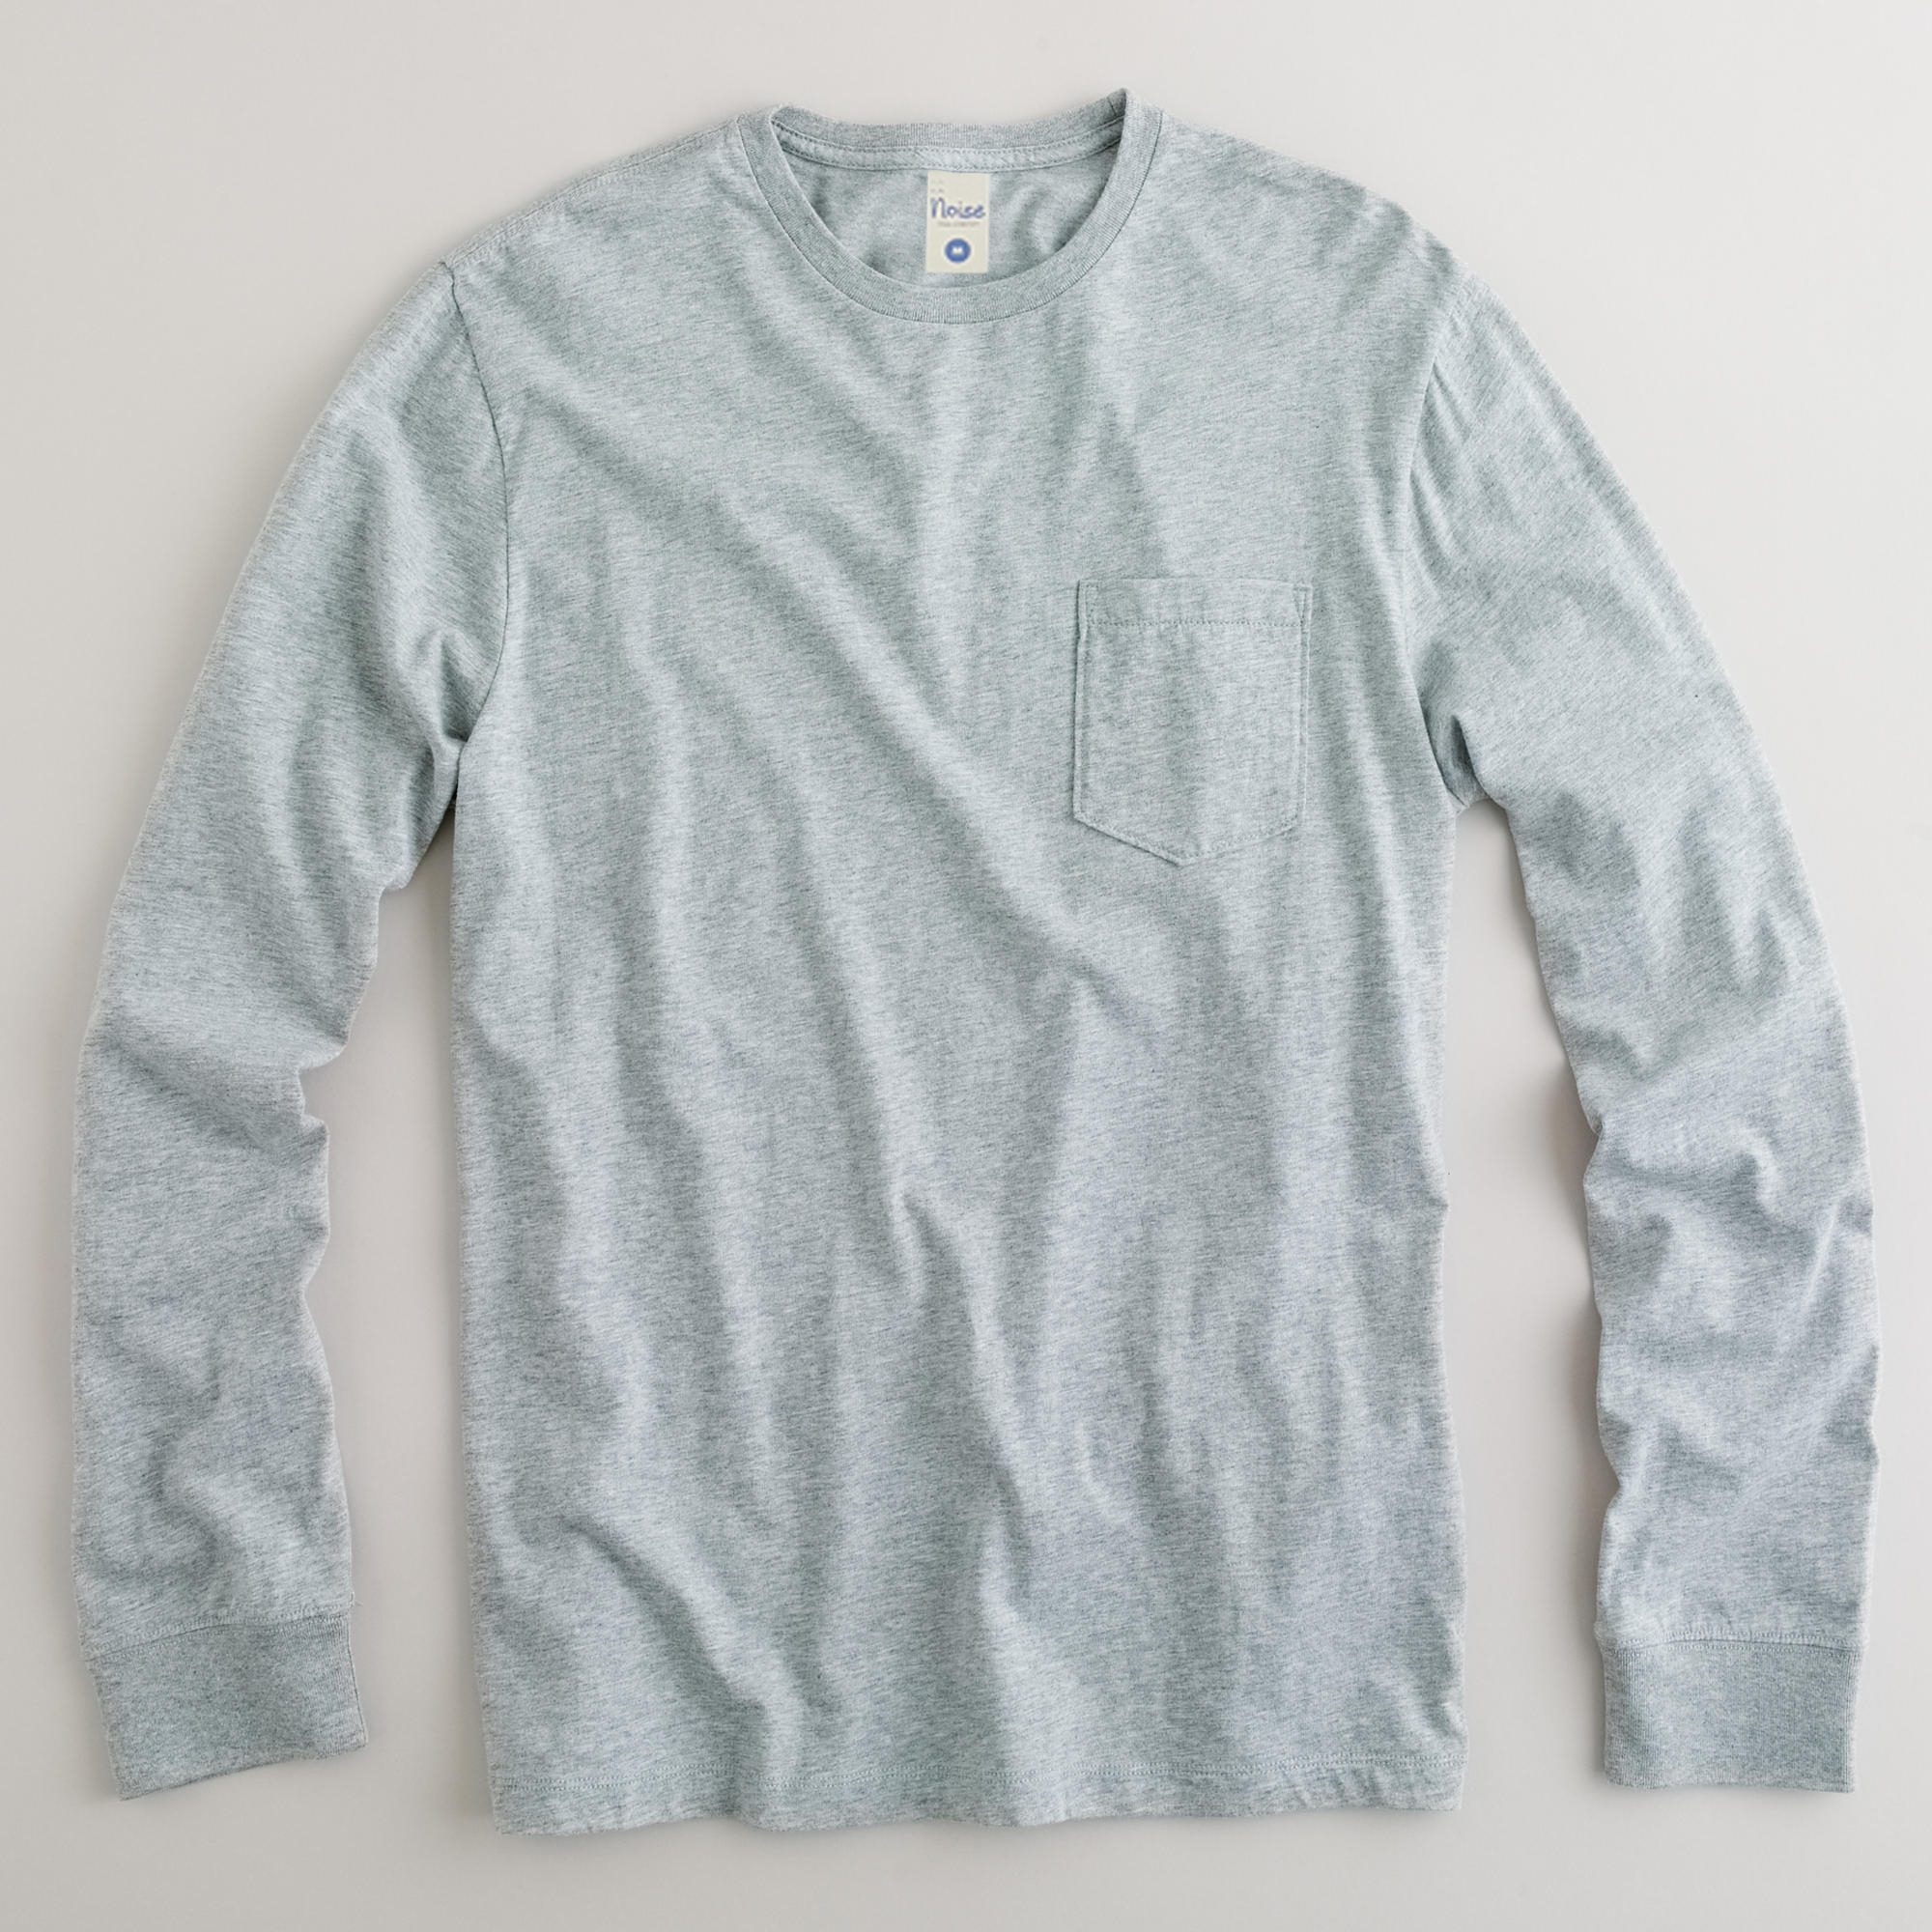 Cotton Heather Tee LS 01